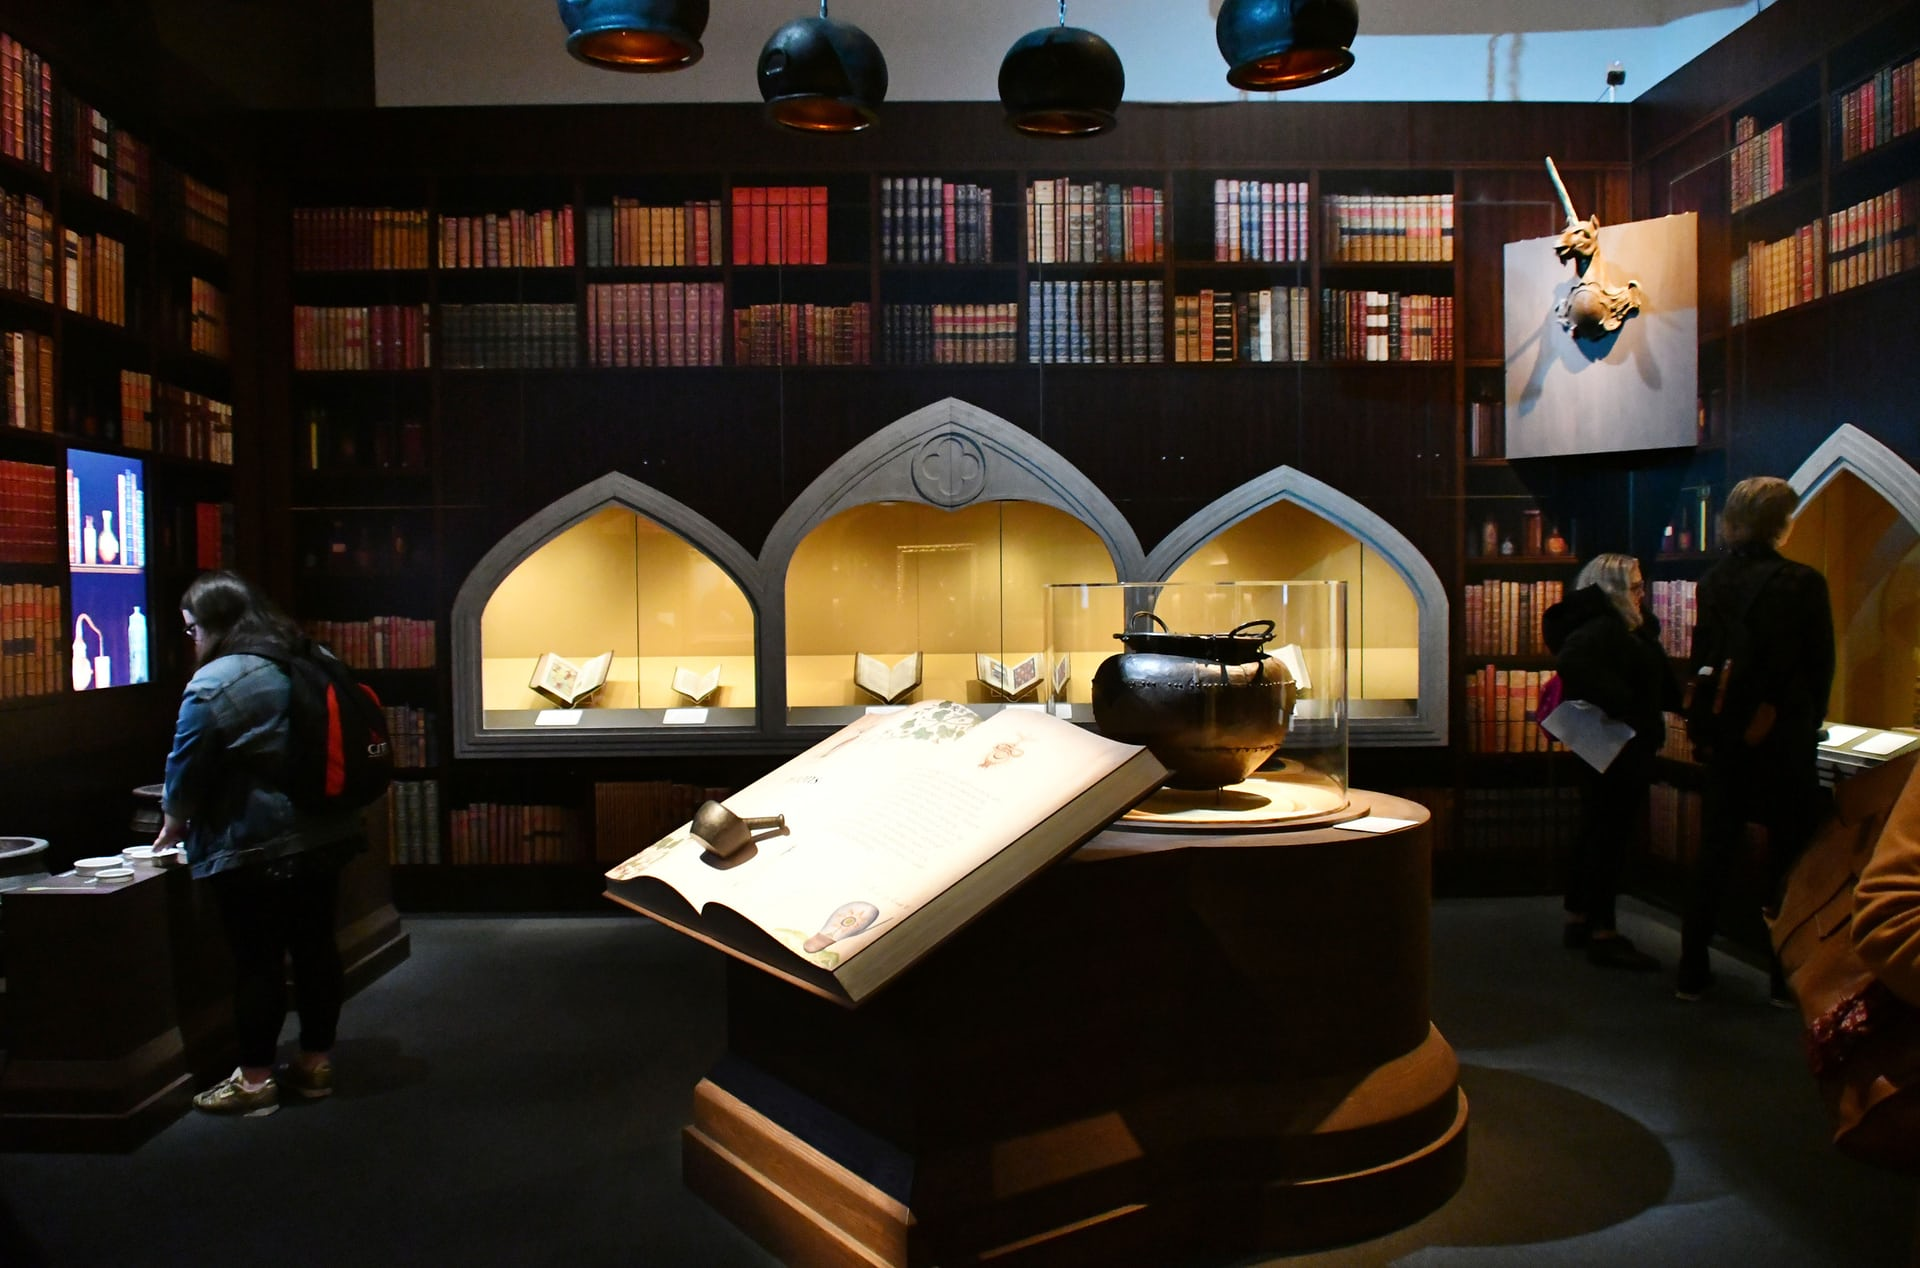 Harry Potter A History of Magic at The British Library